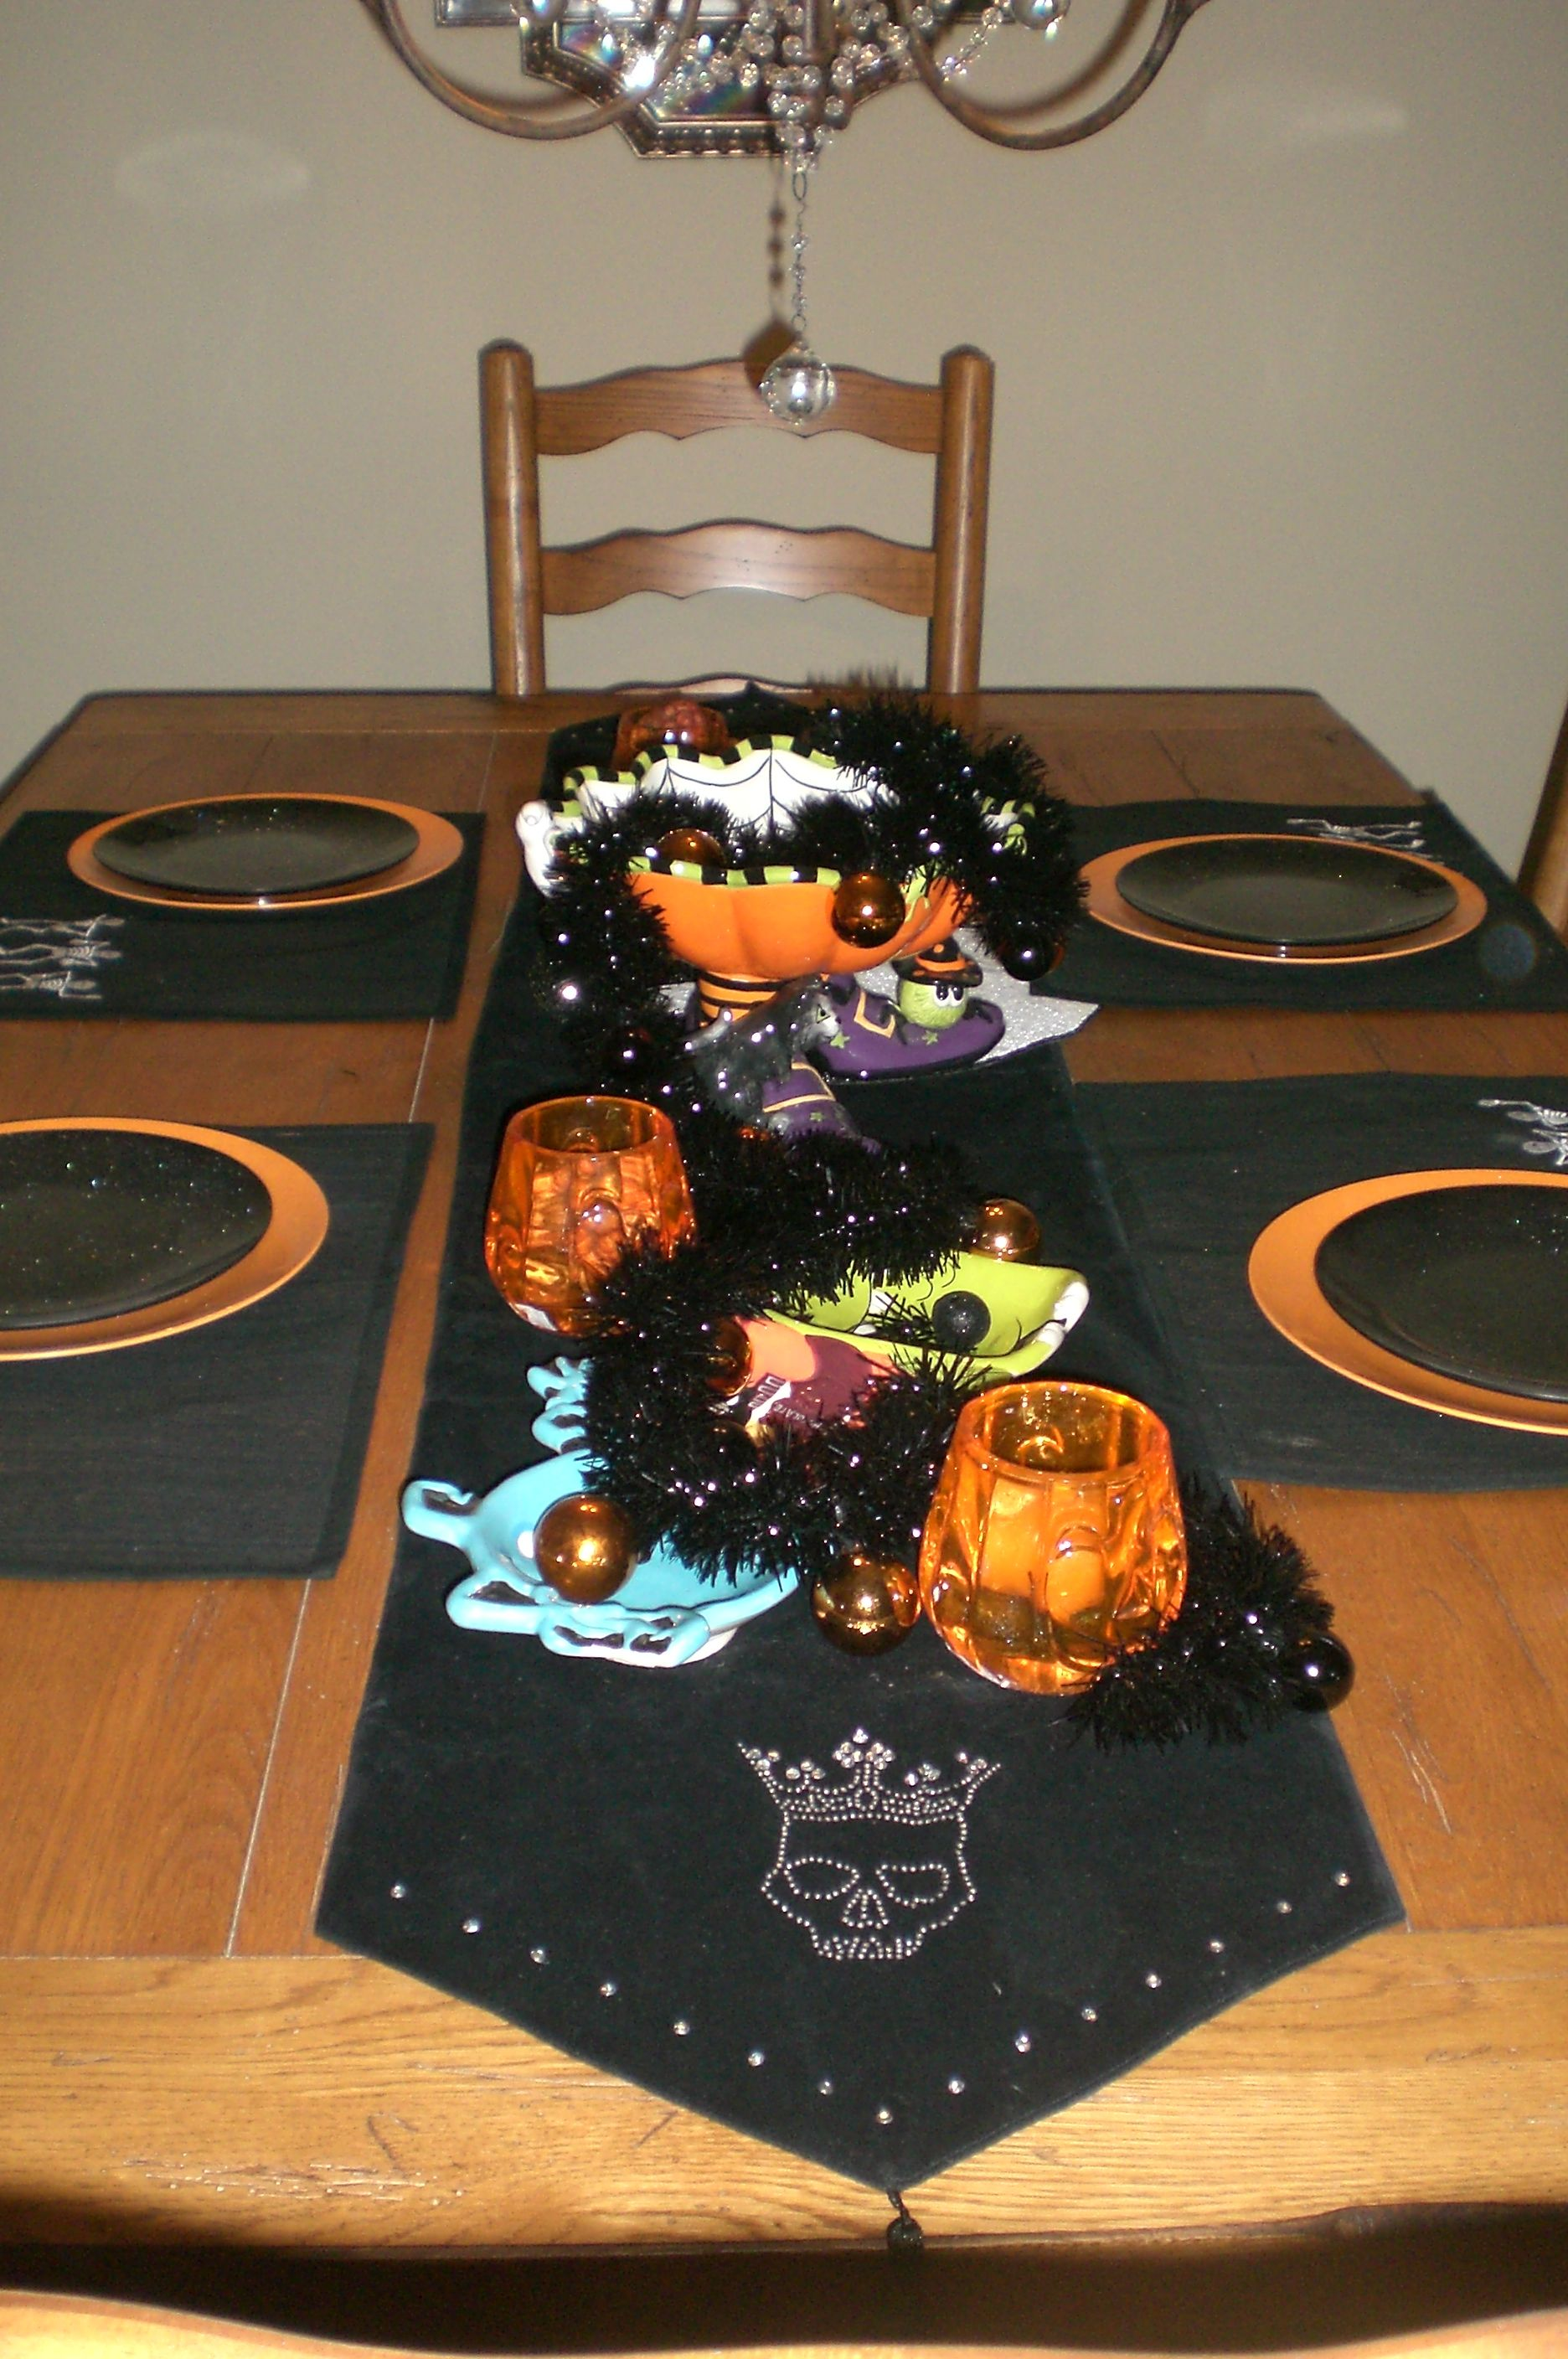 Halloween table decor in my home, compliments of various yrs of - Halloween Table Decorations Pinterest